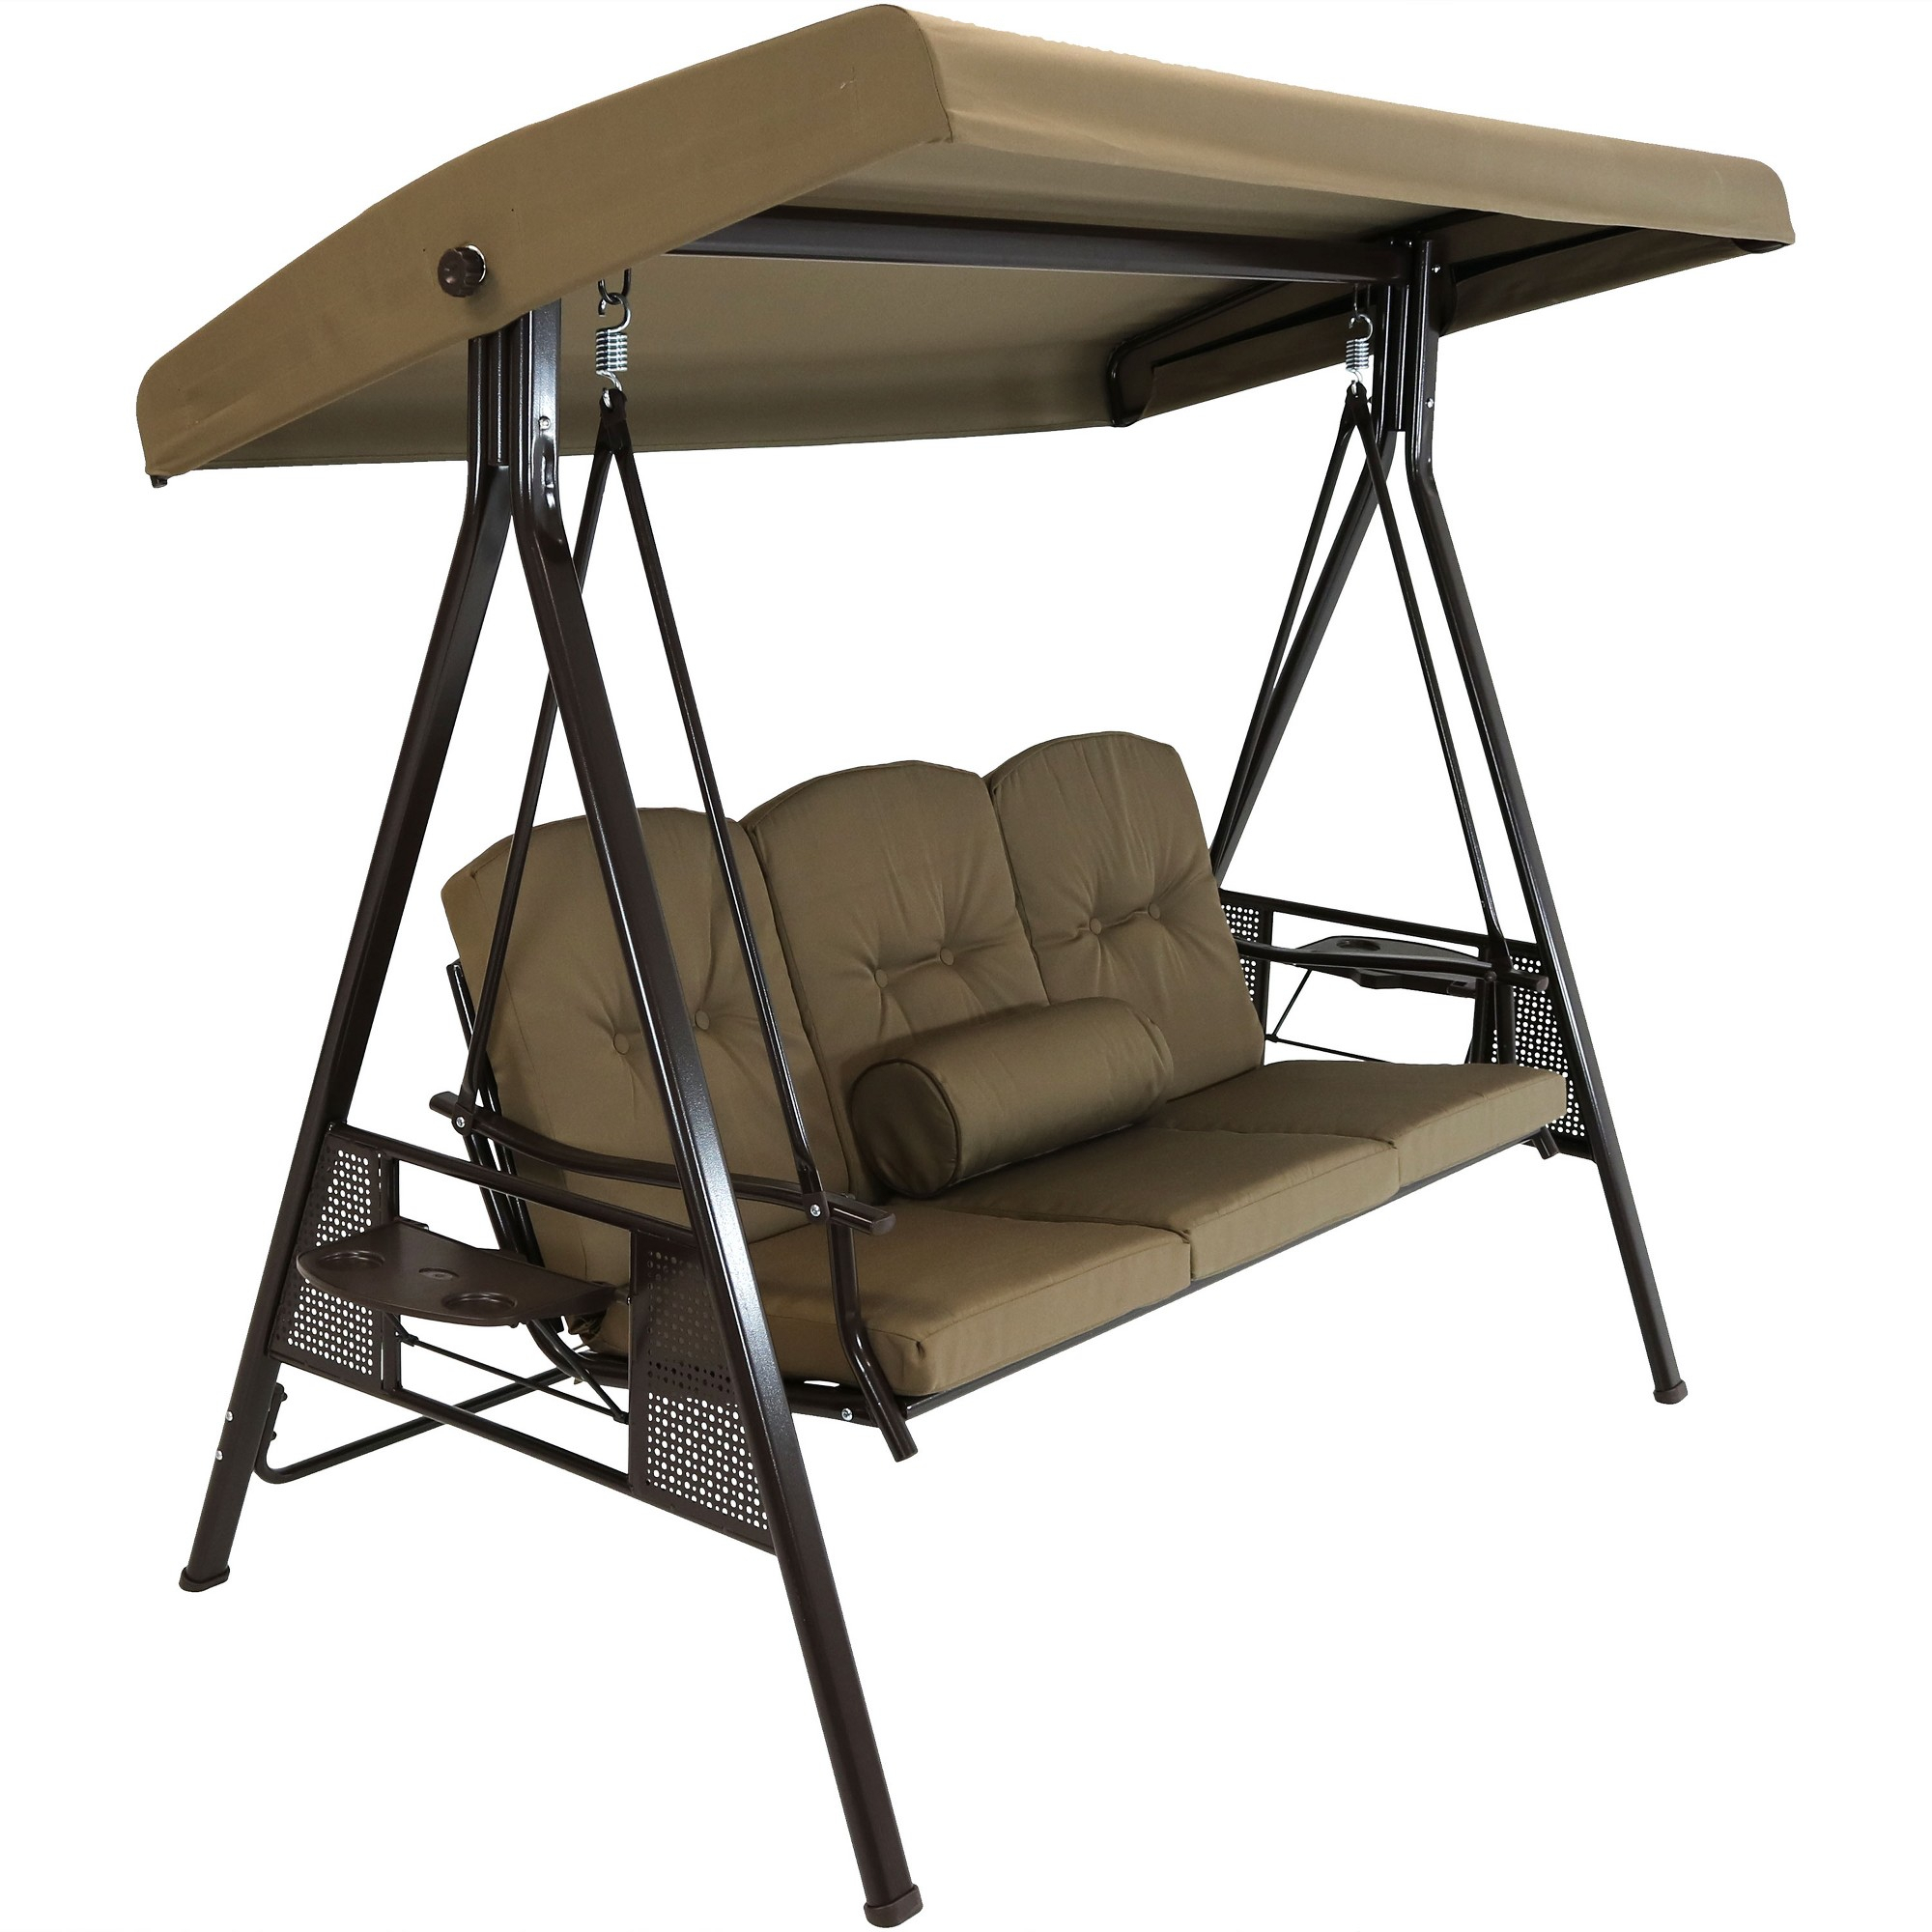 3 Person Steel Frame Canopy Patio Swing With Side Tables Throughout 3 Seater Swings With Frame And Canopy (Image 2 of 25)